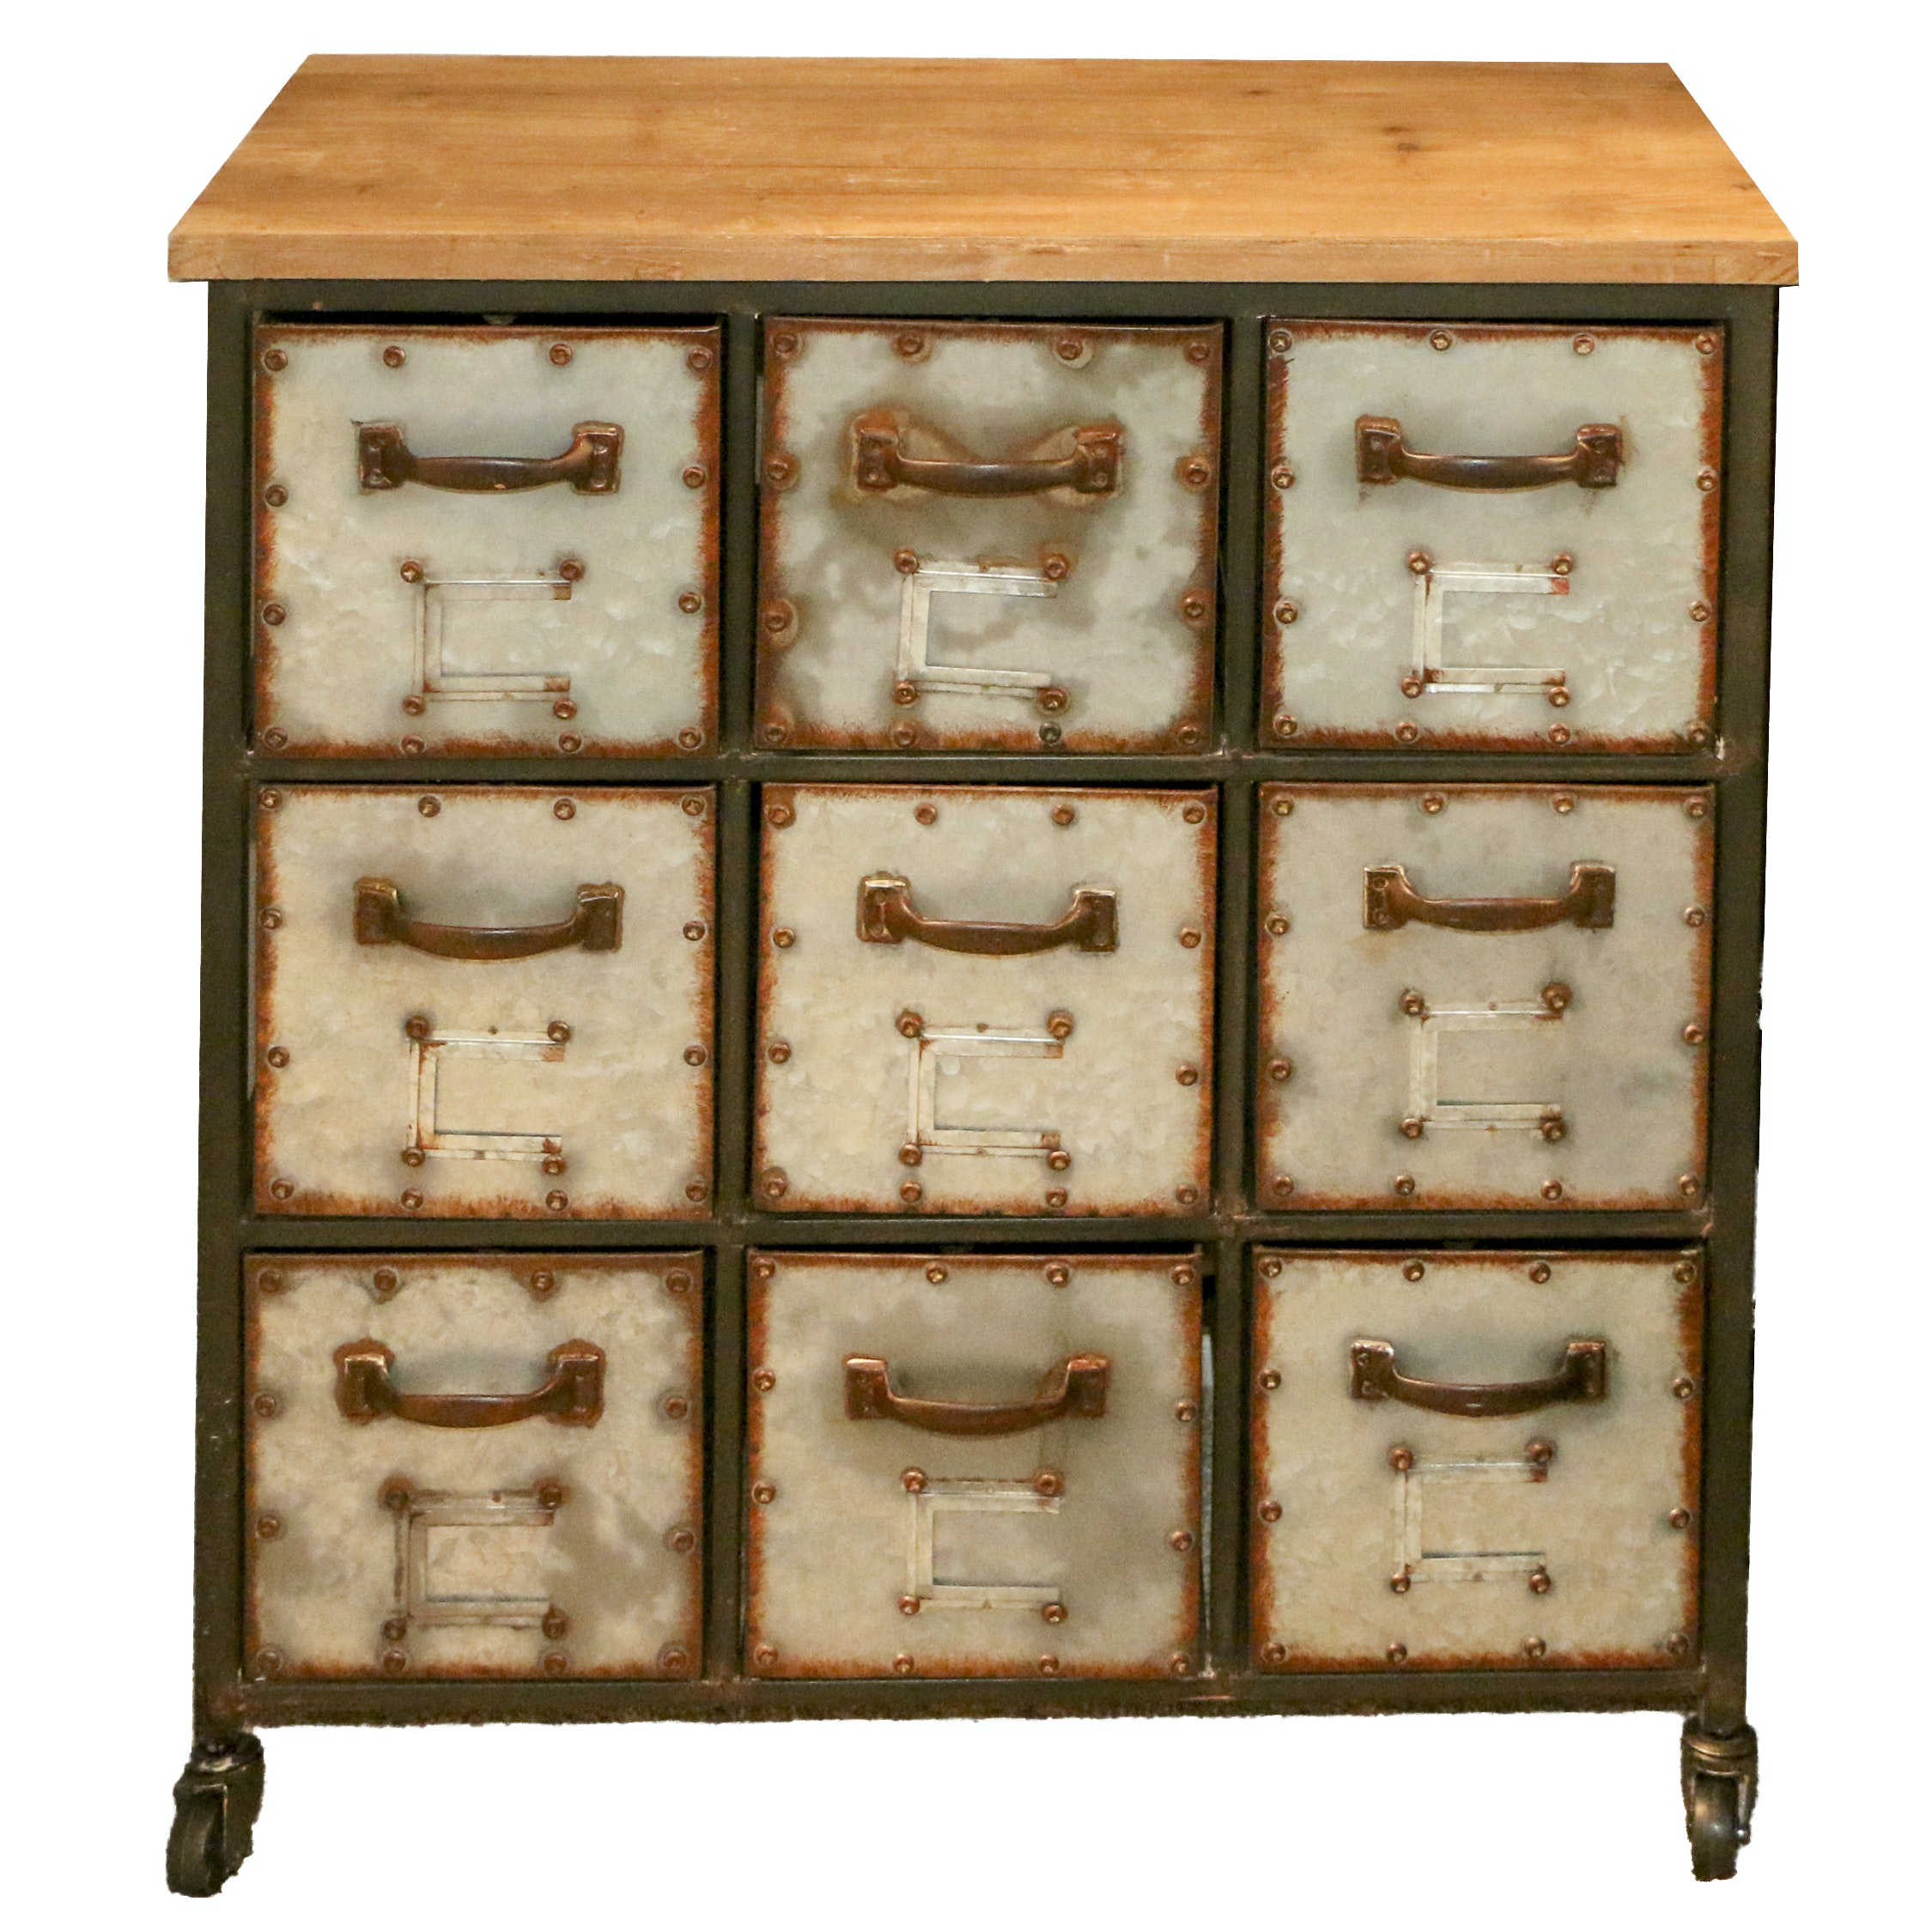 Distressed Metal Apothecary Style Small Chest of Drawers, 21st Century